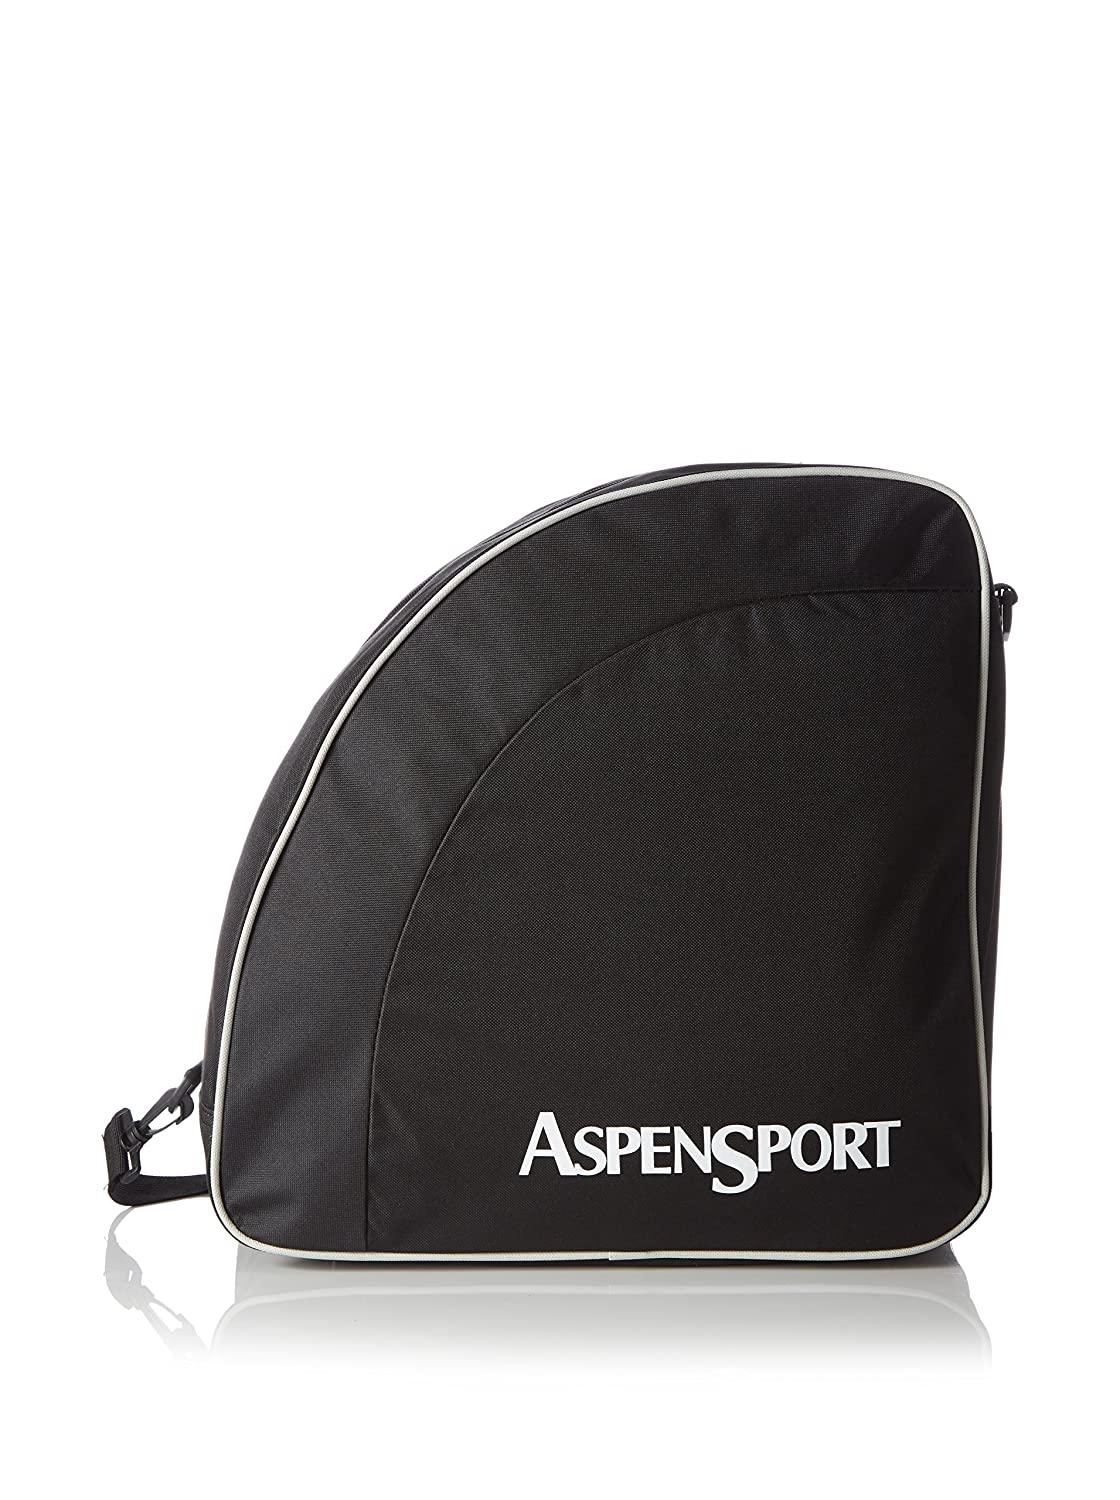 AspenSport de esquí, Driver, Black, AS152014, 40 x 24 x 41 cm AS152014_schwarz